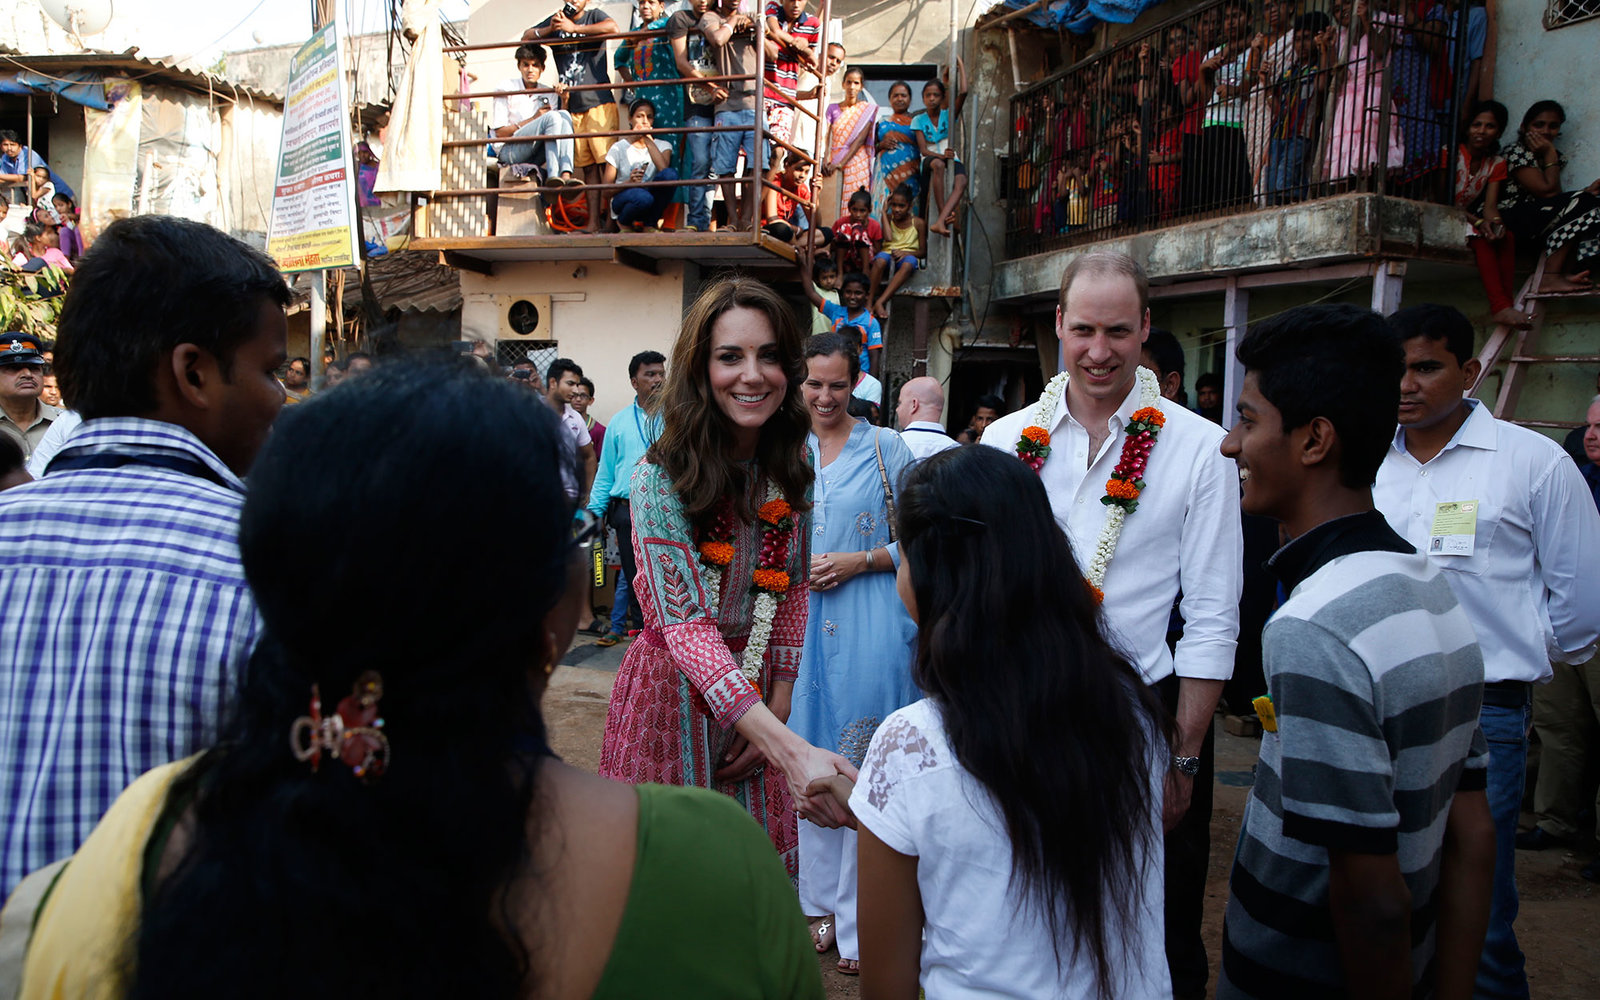 MUMBAI, INDIA - APRIL 10:   Prince William, Duke of Cambridge and Catherine, Duchess of Cambridge during a visit to the Banganga Water tank, where they met representatives of SMILE during the royal visit to India and Bhutan on April 10, 2016 in Mumbai, In